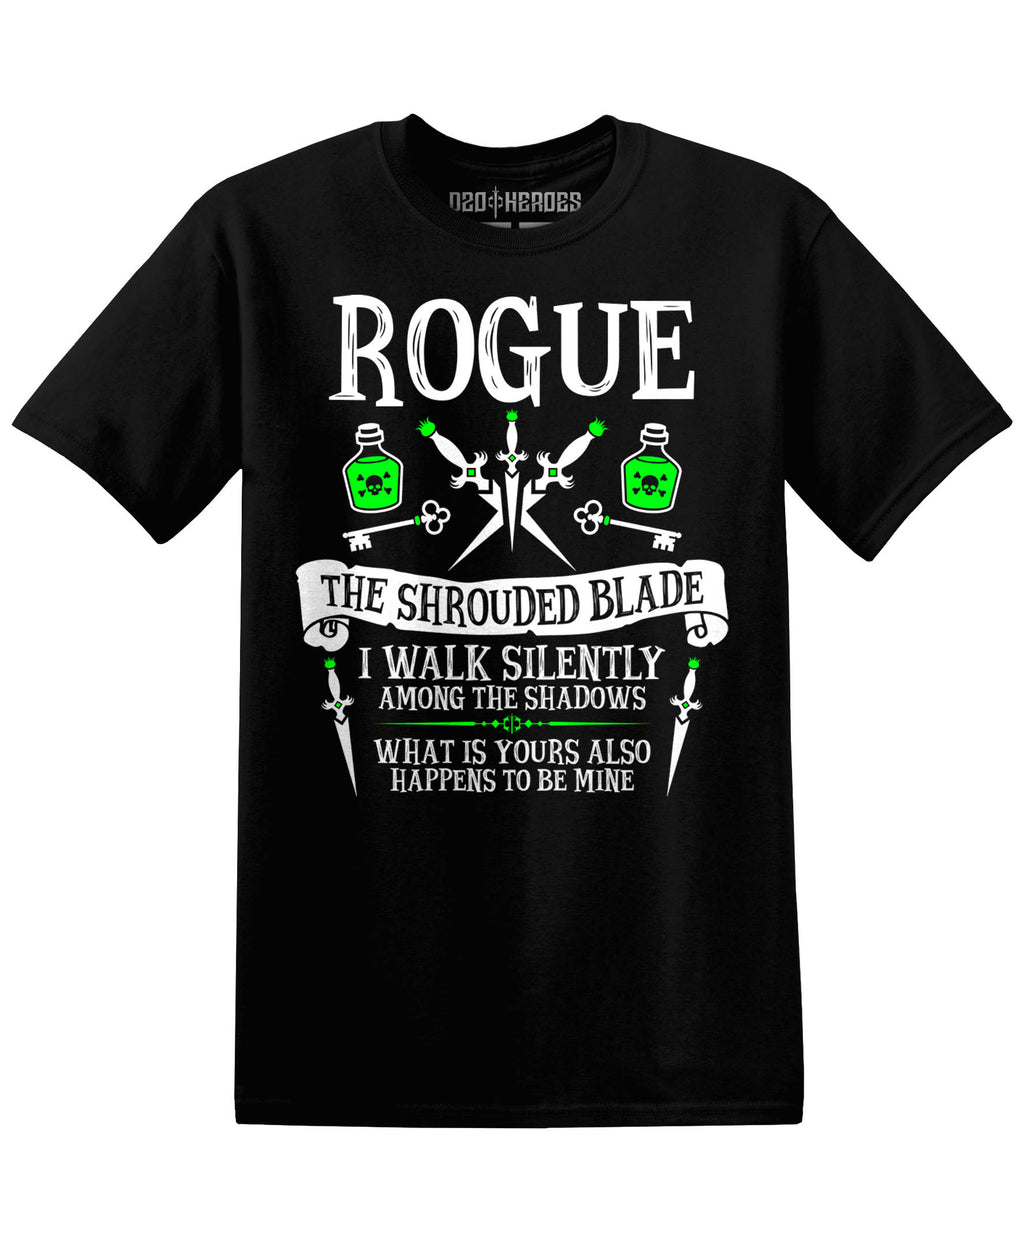 Rogue : The Shrouded Blade - T-Shirt - D20 Heroes / Dungeons and Dragons and Fantasy Clothing and Merchandise